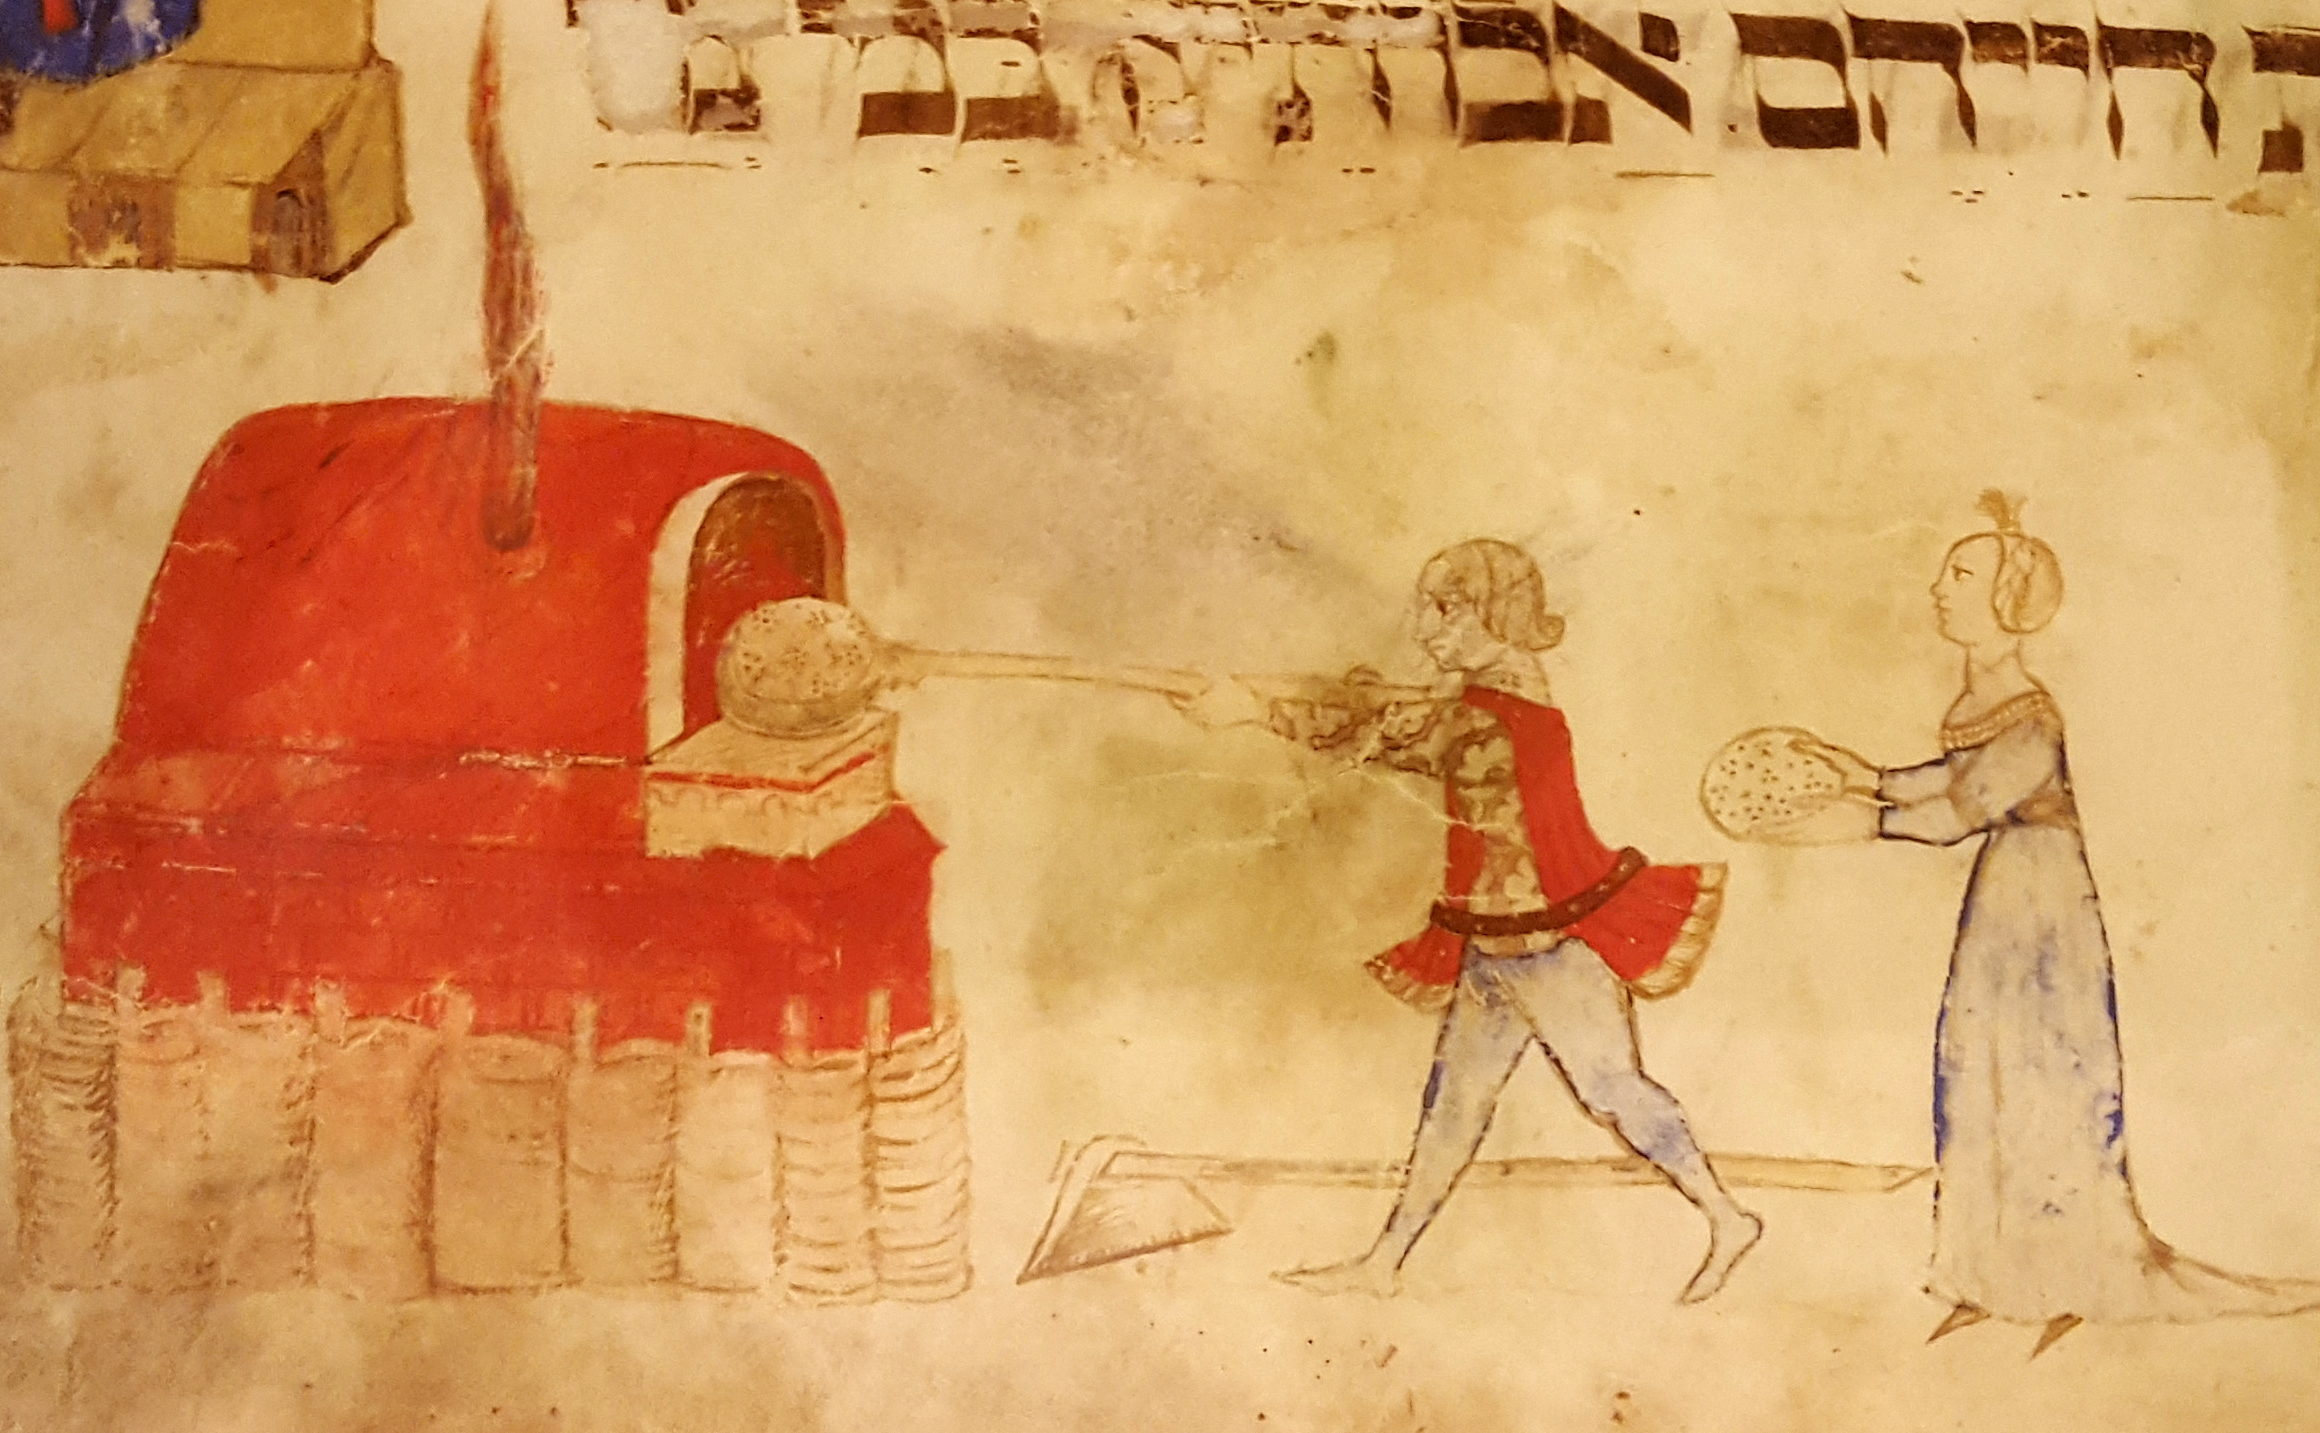 Celebrating Hanukkah in the Middle Ages